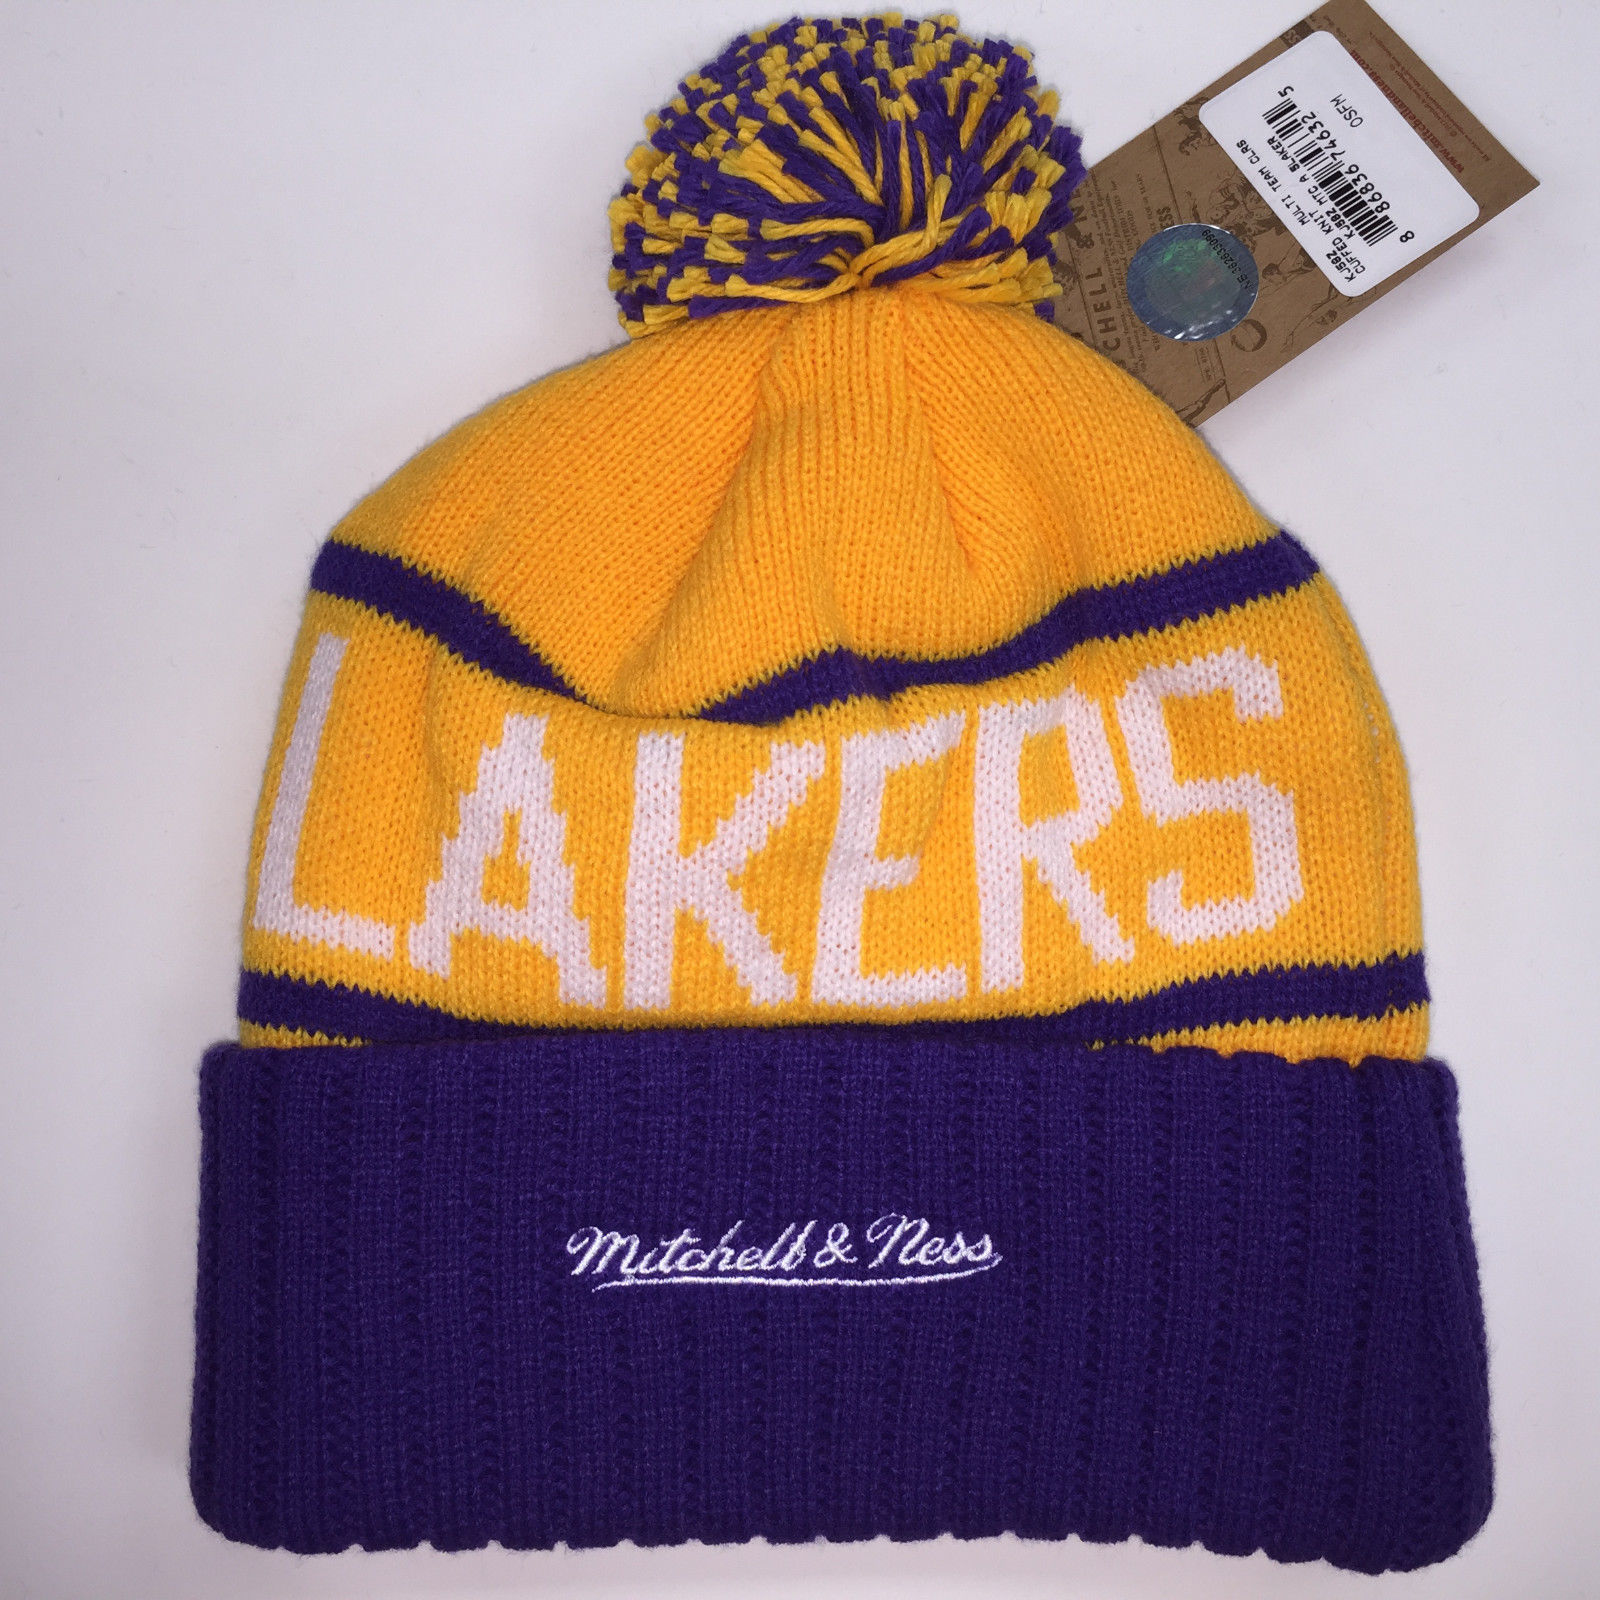 Mitchell & Ness NBA Los Angeles Lakers High 5 Cuffed Knit Beanie 11878